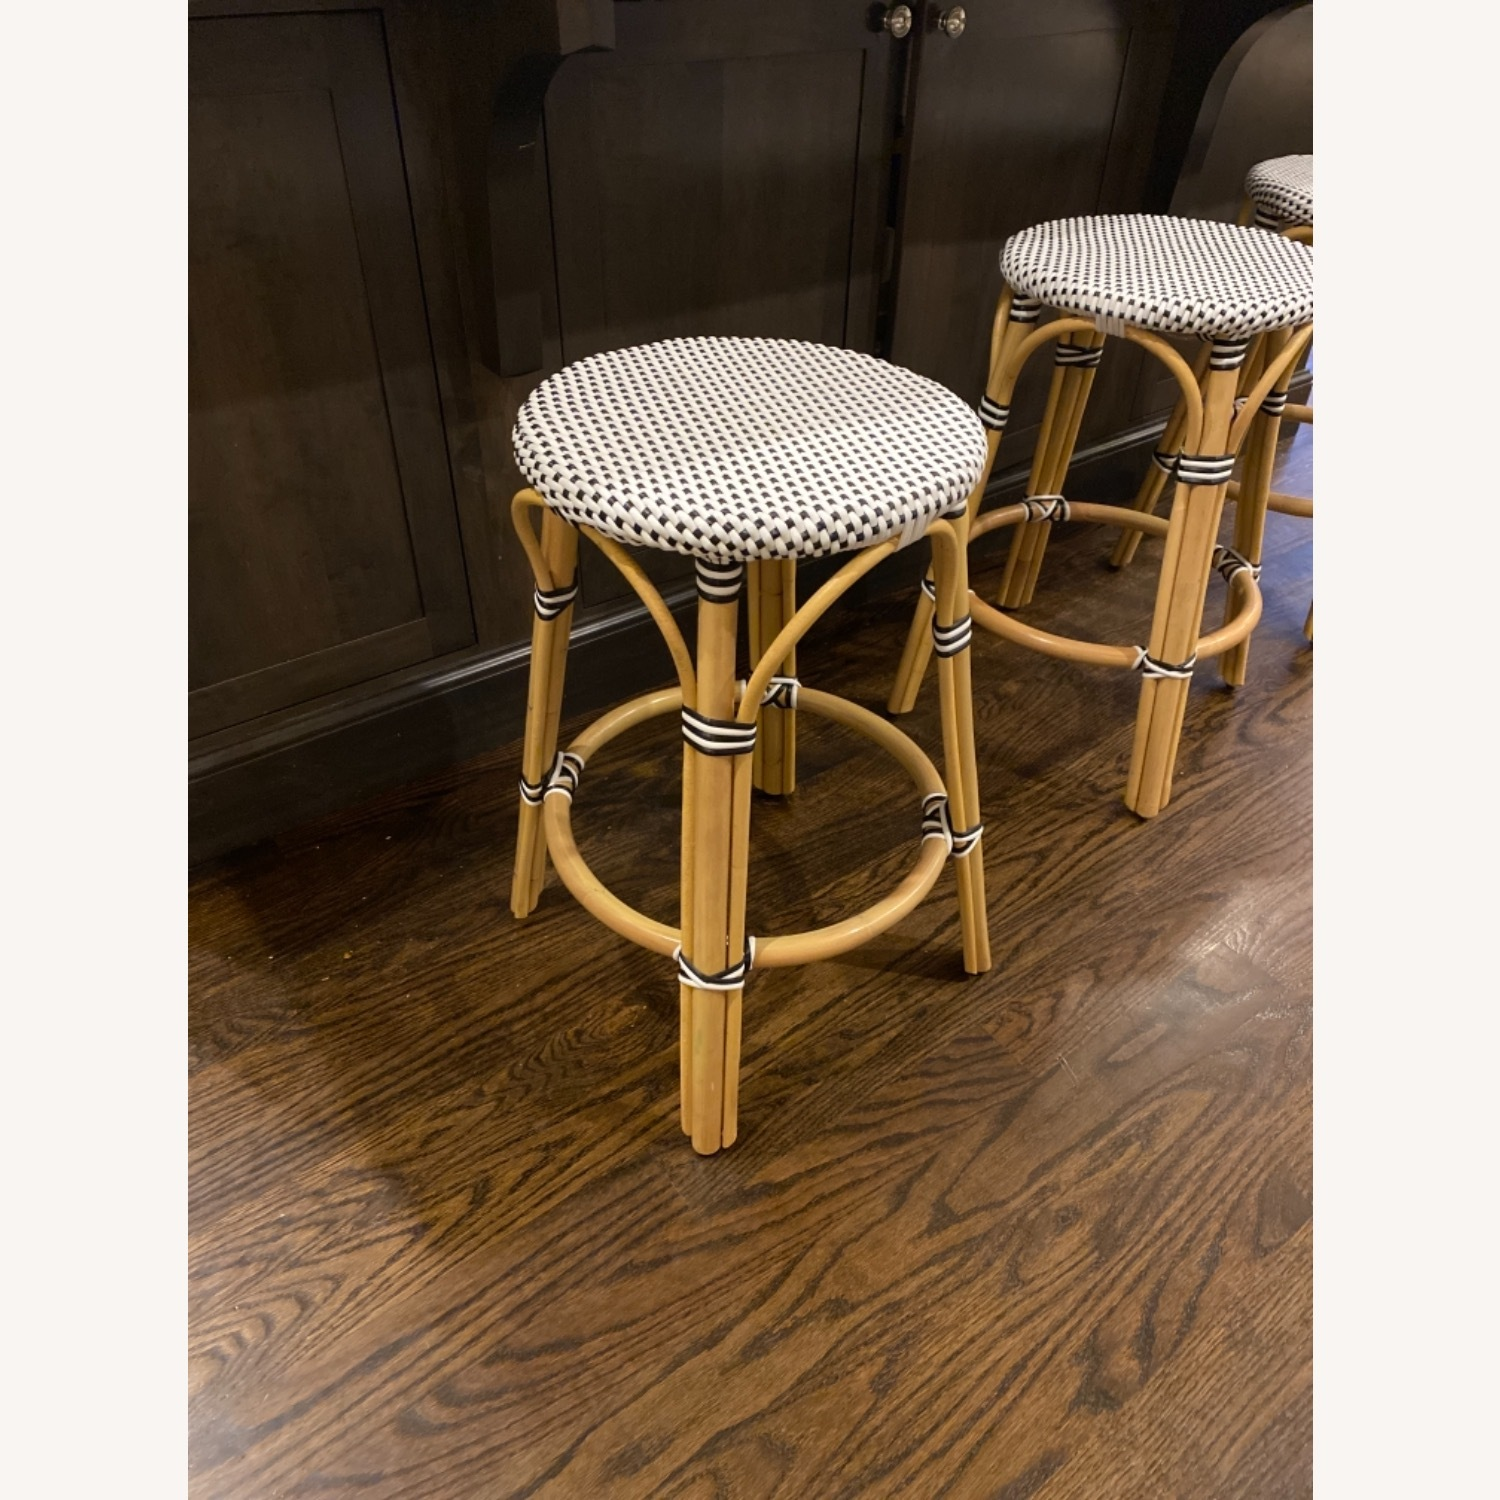 Wayfair (Serena Lily style) Counter Stools - image-3